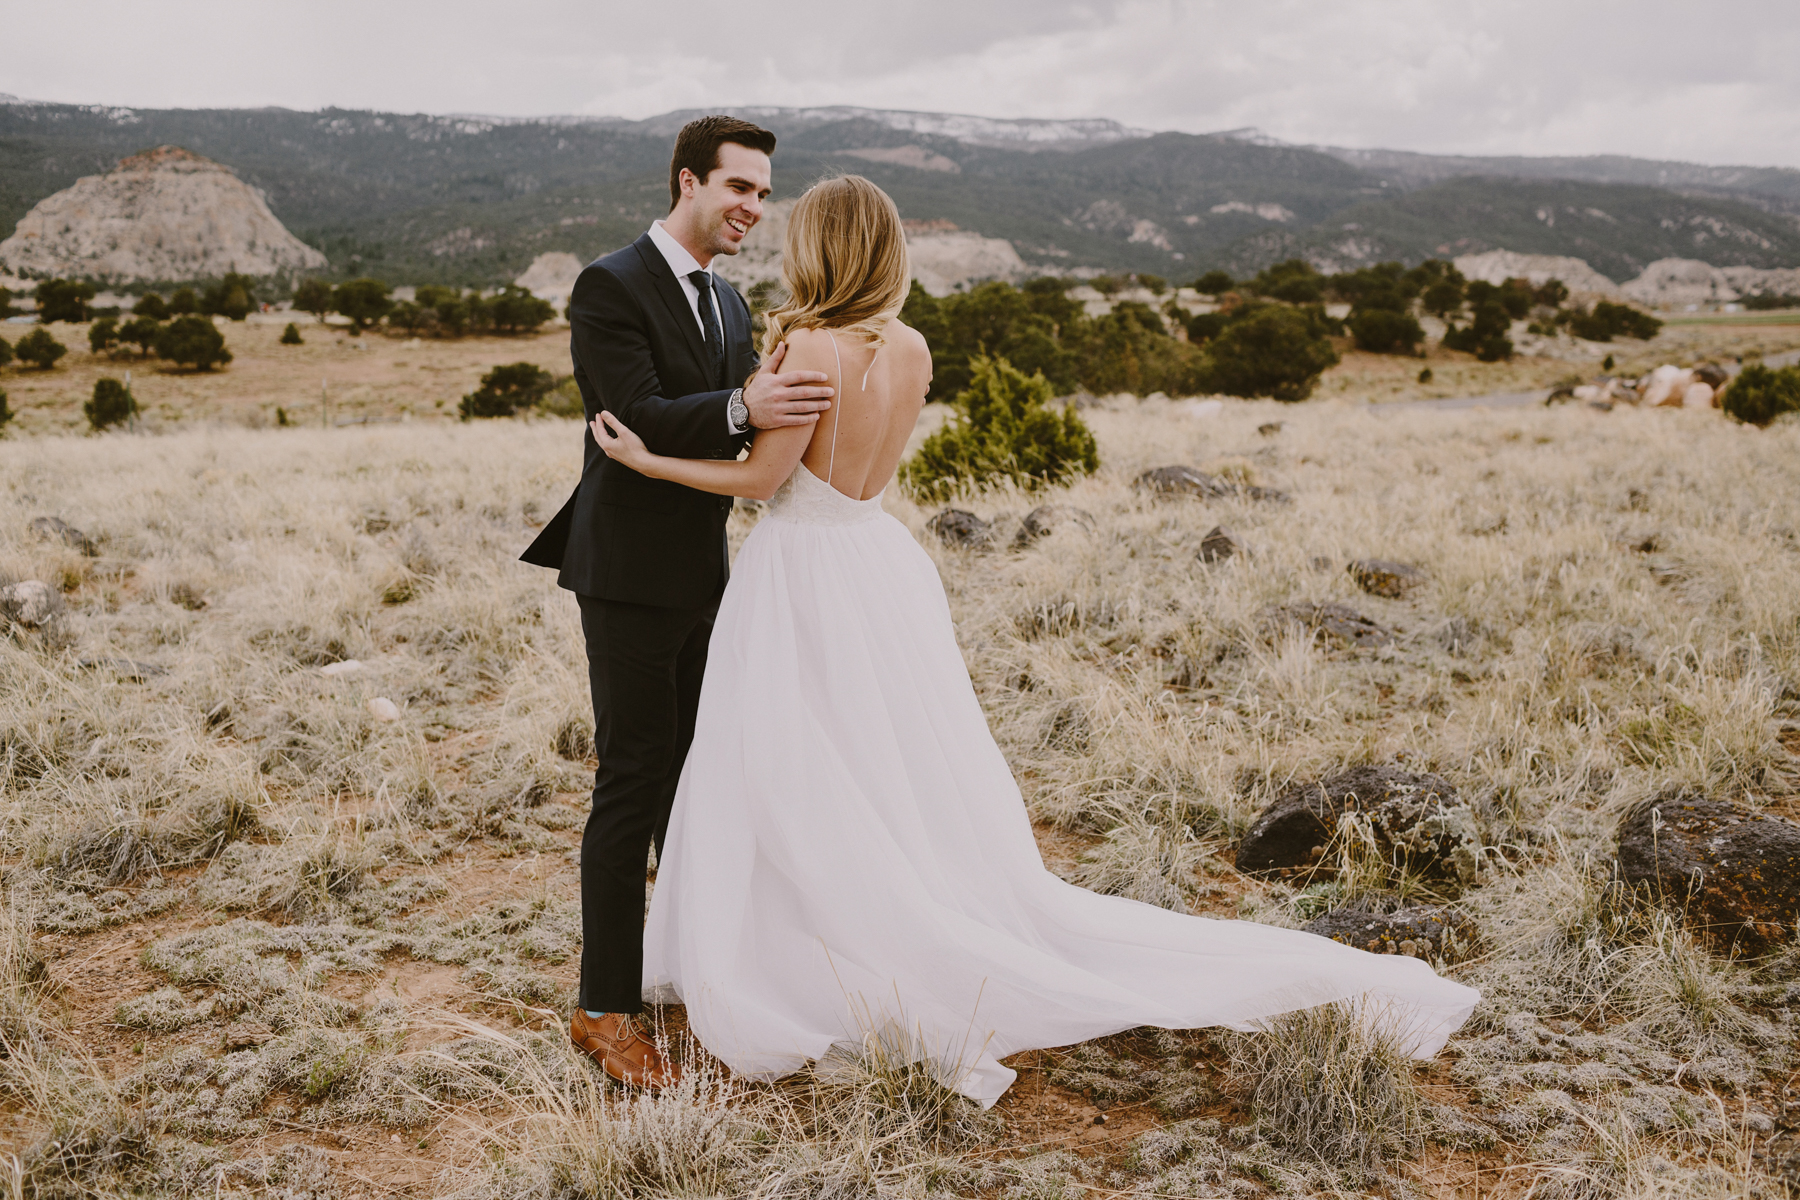 first look on their wedding day in southern Utah